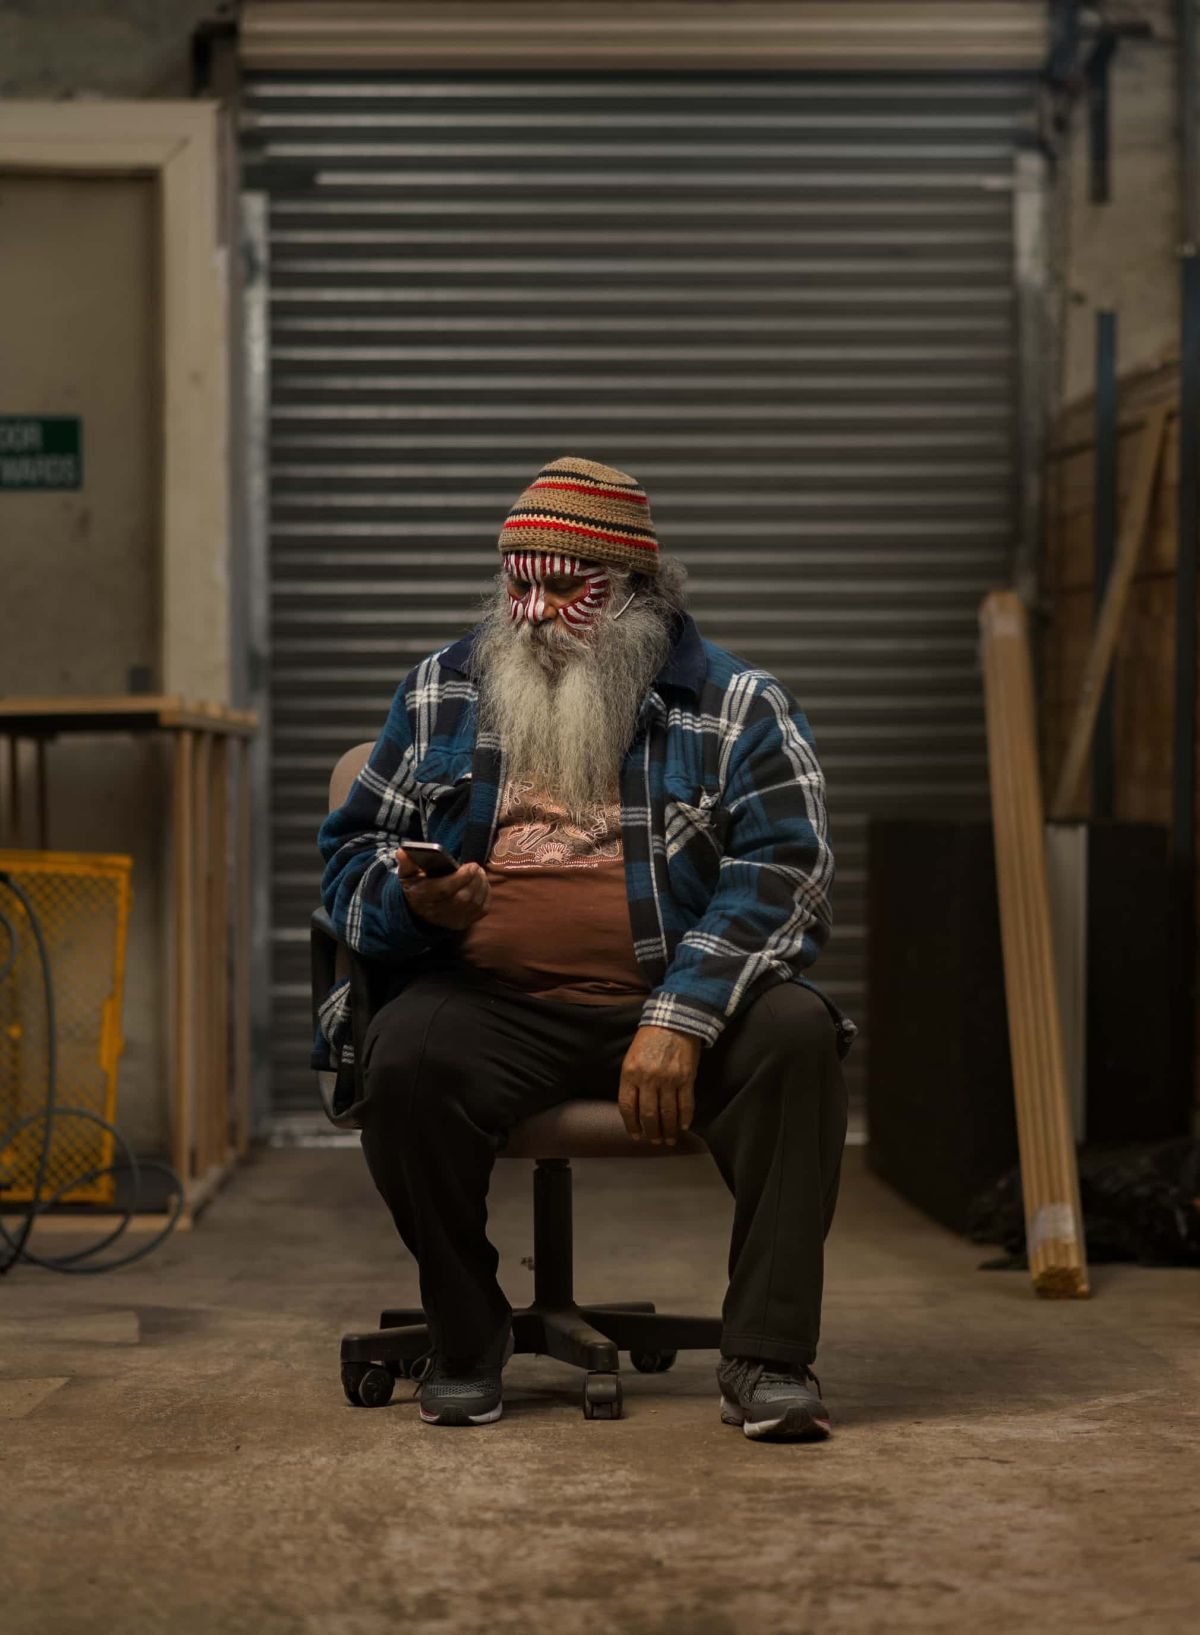 two way dualistic national photographic portrait prize by dave